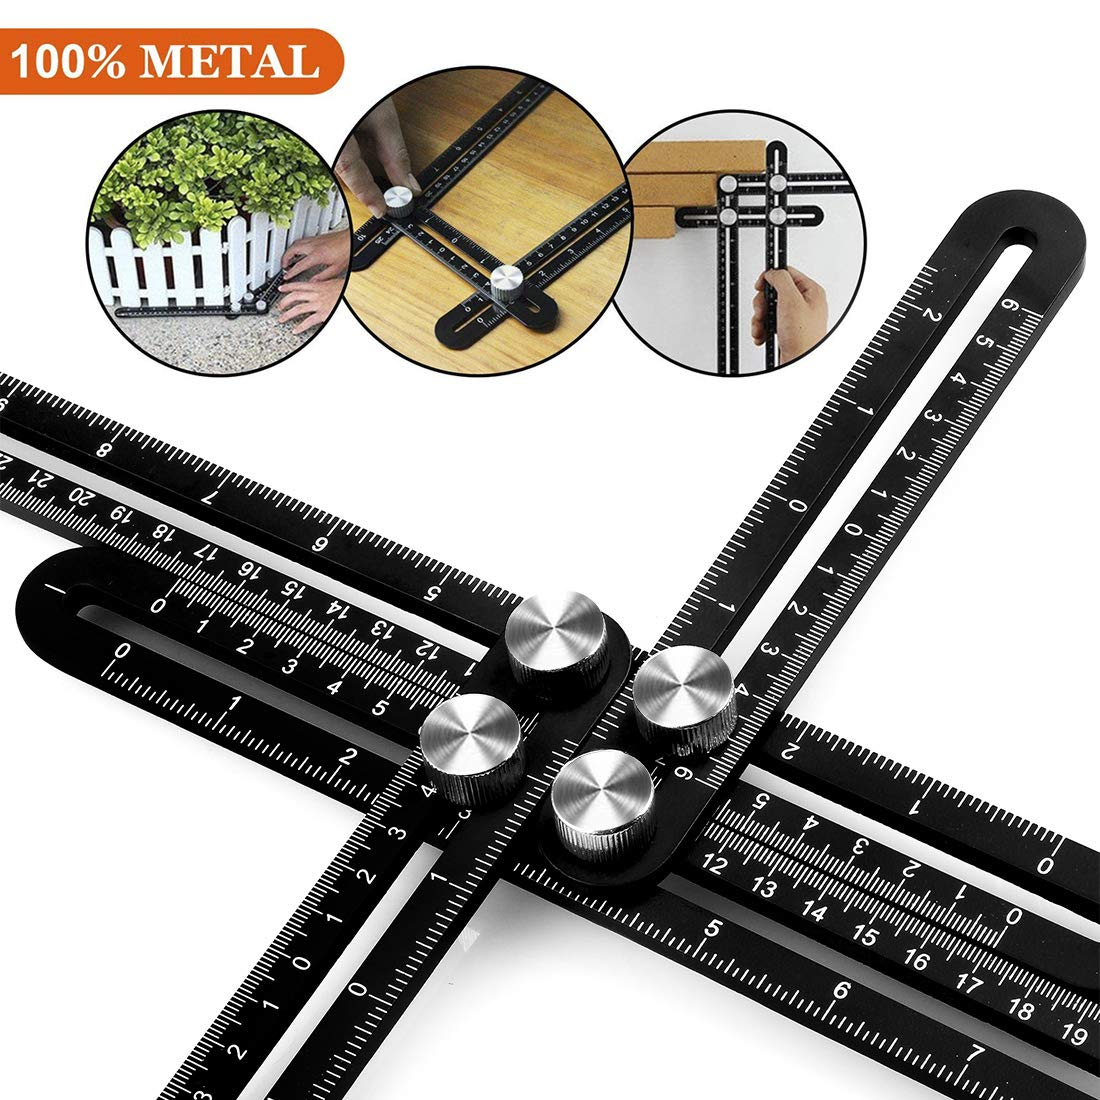 Angleizer Template Tool Multi Angle Measuring Ruler Easy Angle Ruler for Handymen Builders Craftsmen Roofers or Any DIY ers Aluminum Alloy